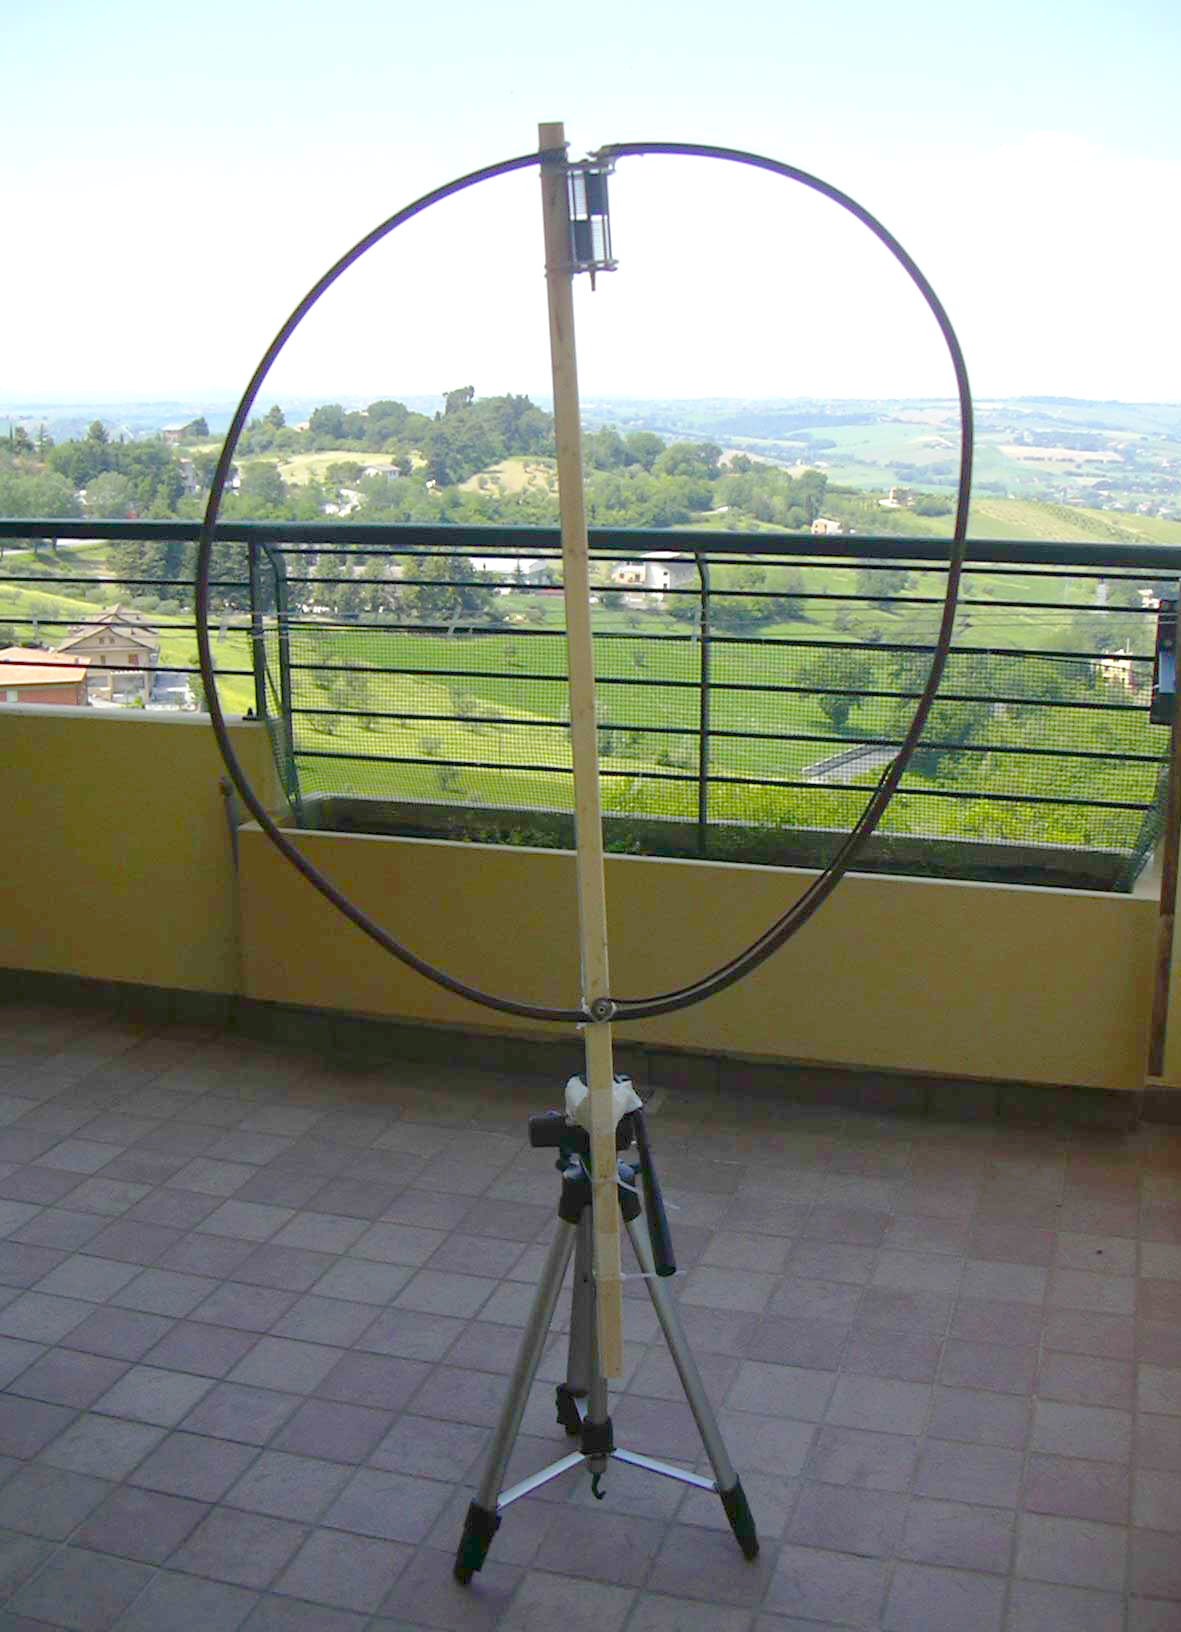 20 Meter Circular Magnetic Loop by Maurizio Malaspina - IW6DFW